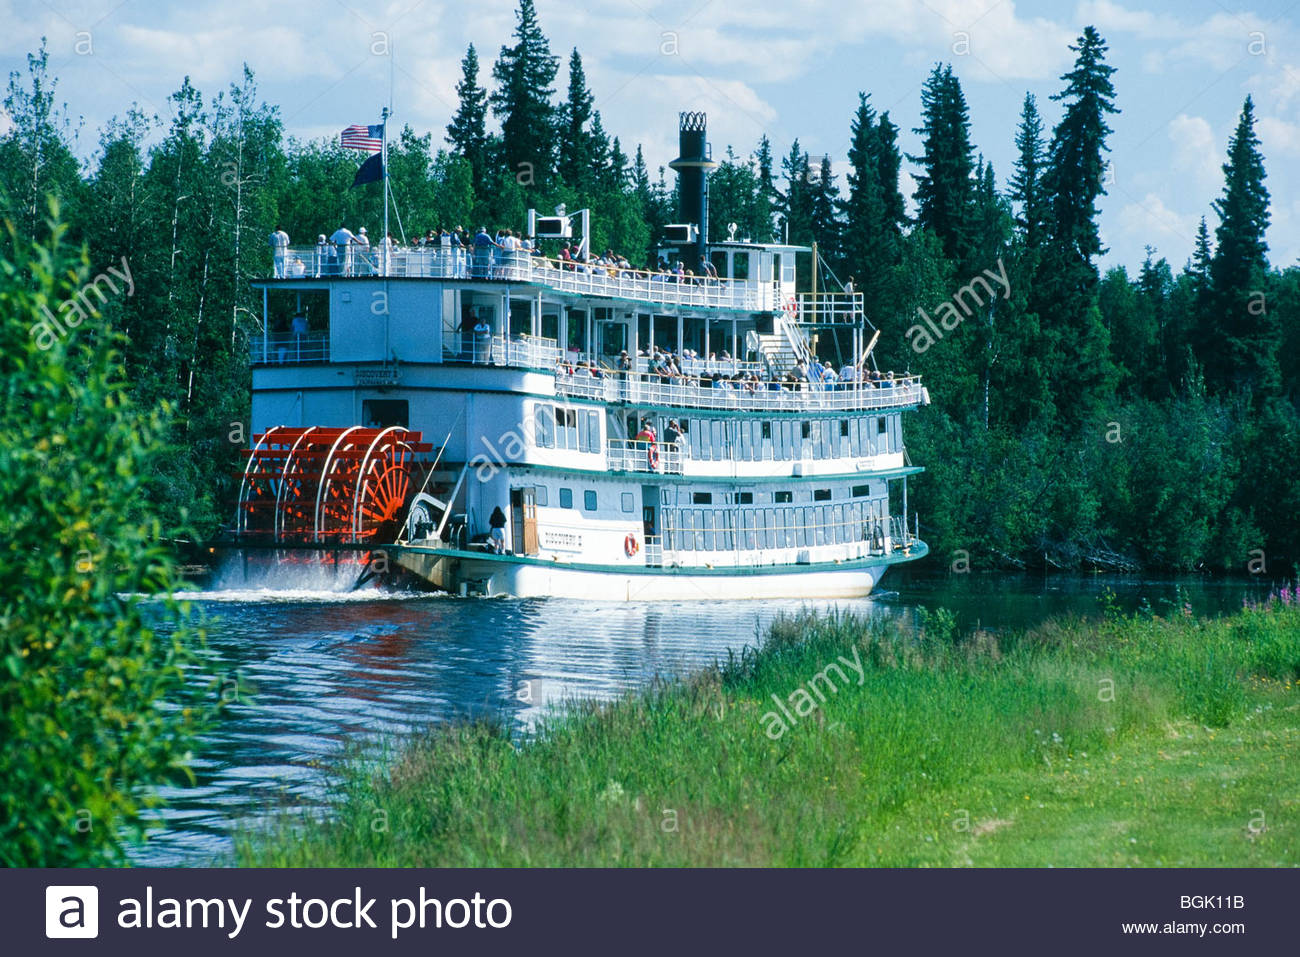 Alaska. Fairbanks, Chena River. Discovery III Riverboat plies on the river. - Stock Image